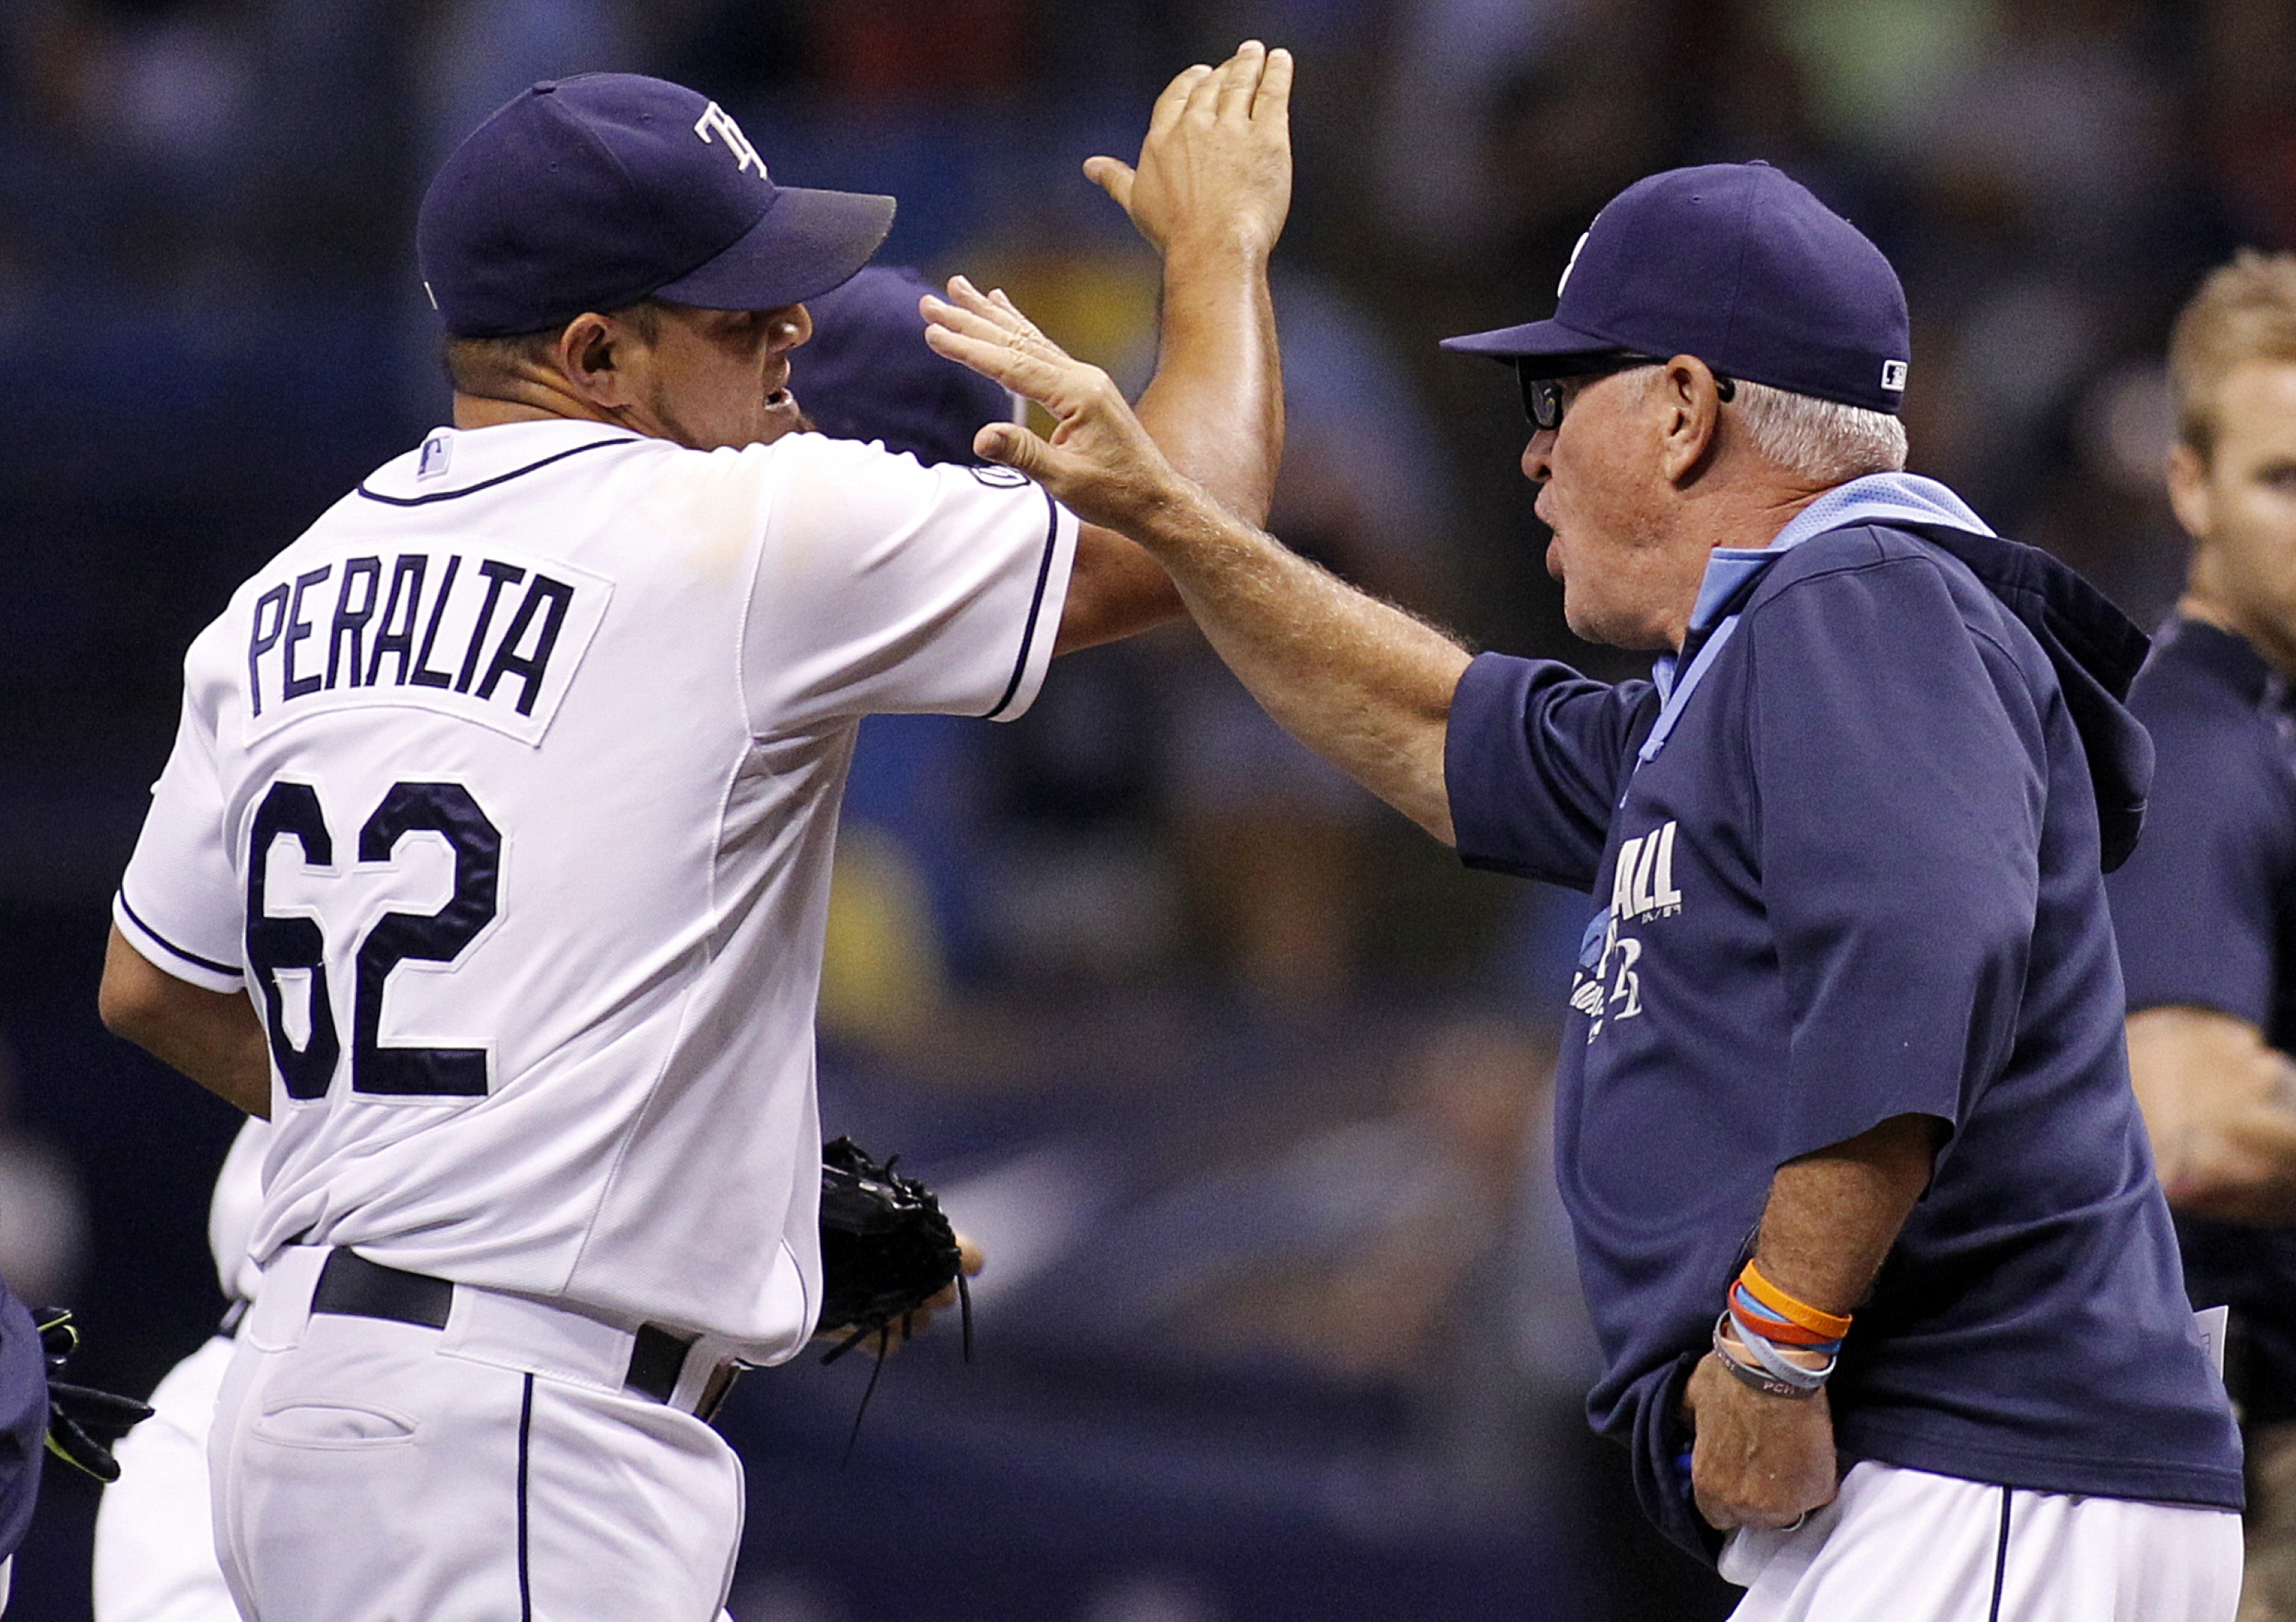 Rays climb back to .500 after being 18 games under on June 10